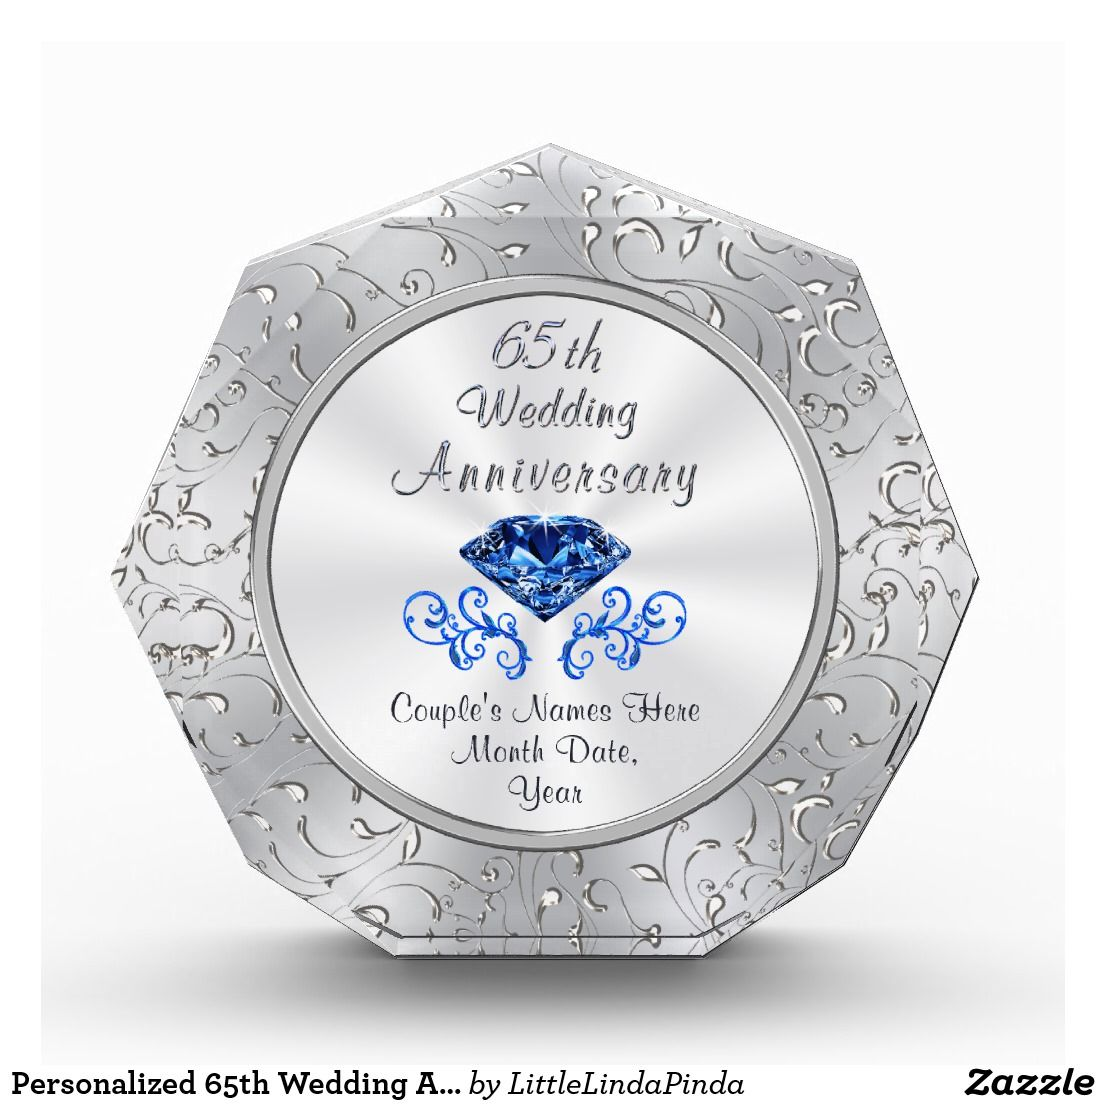 Personalized 65th Wedding Anniversary Gift Ideas